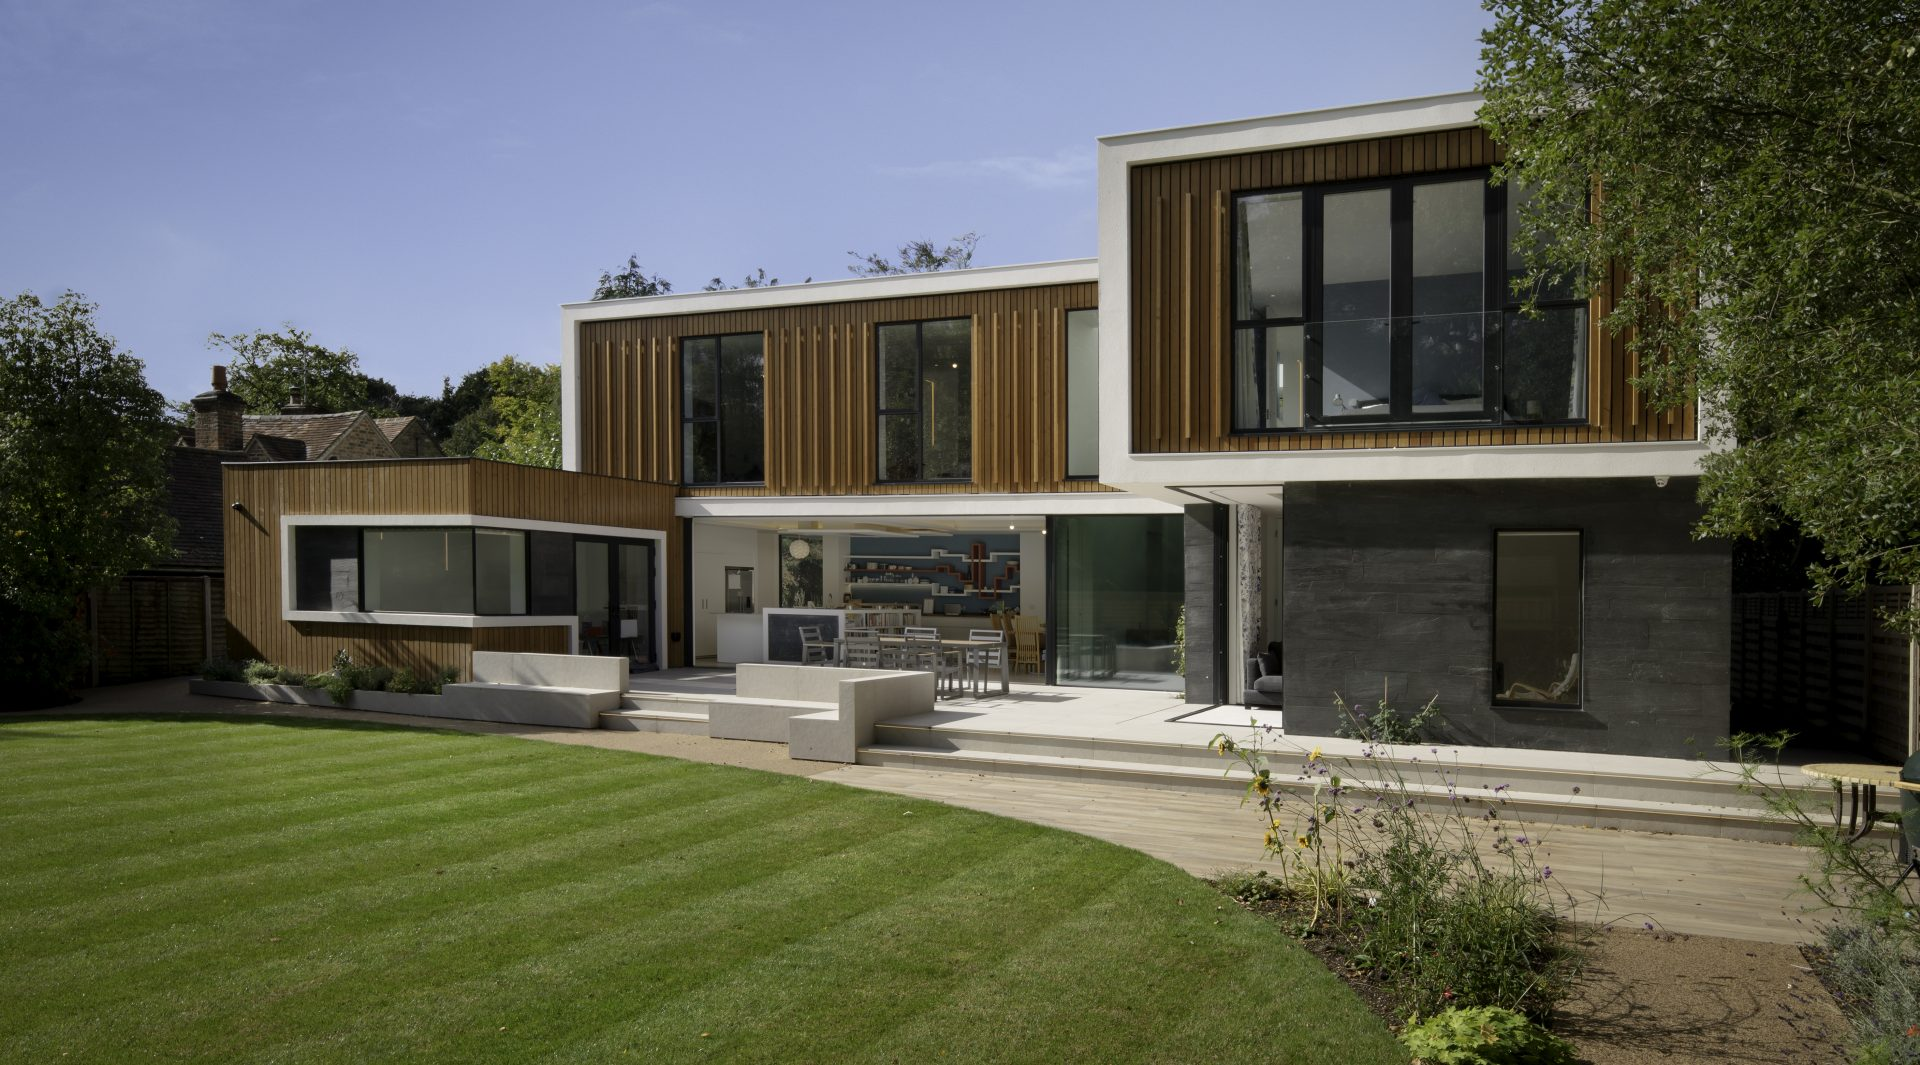 JW Architects Ltd